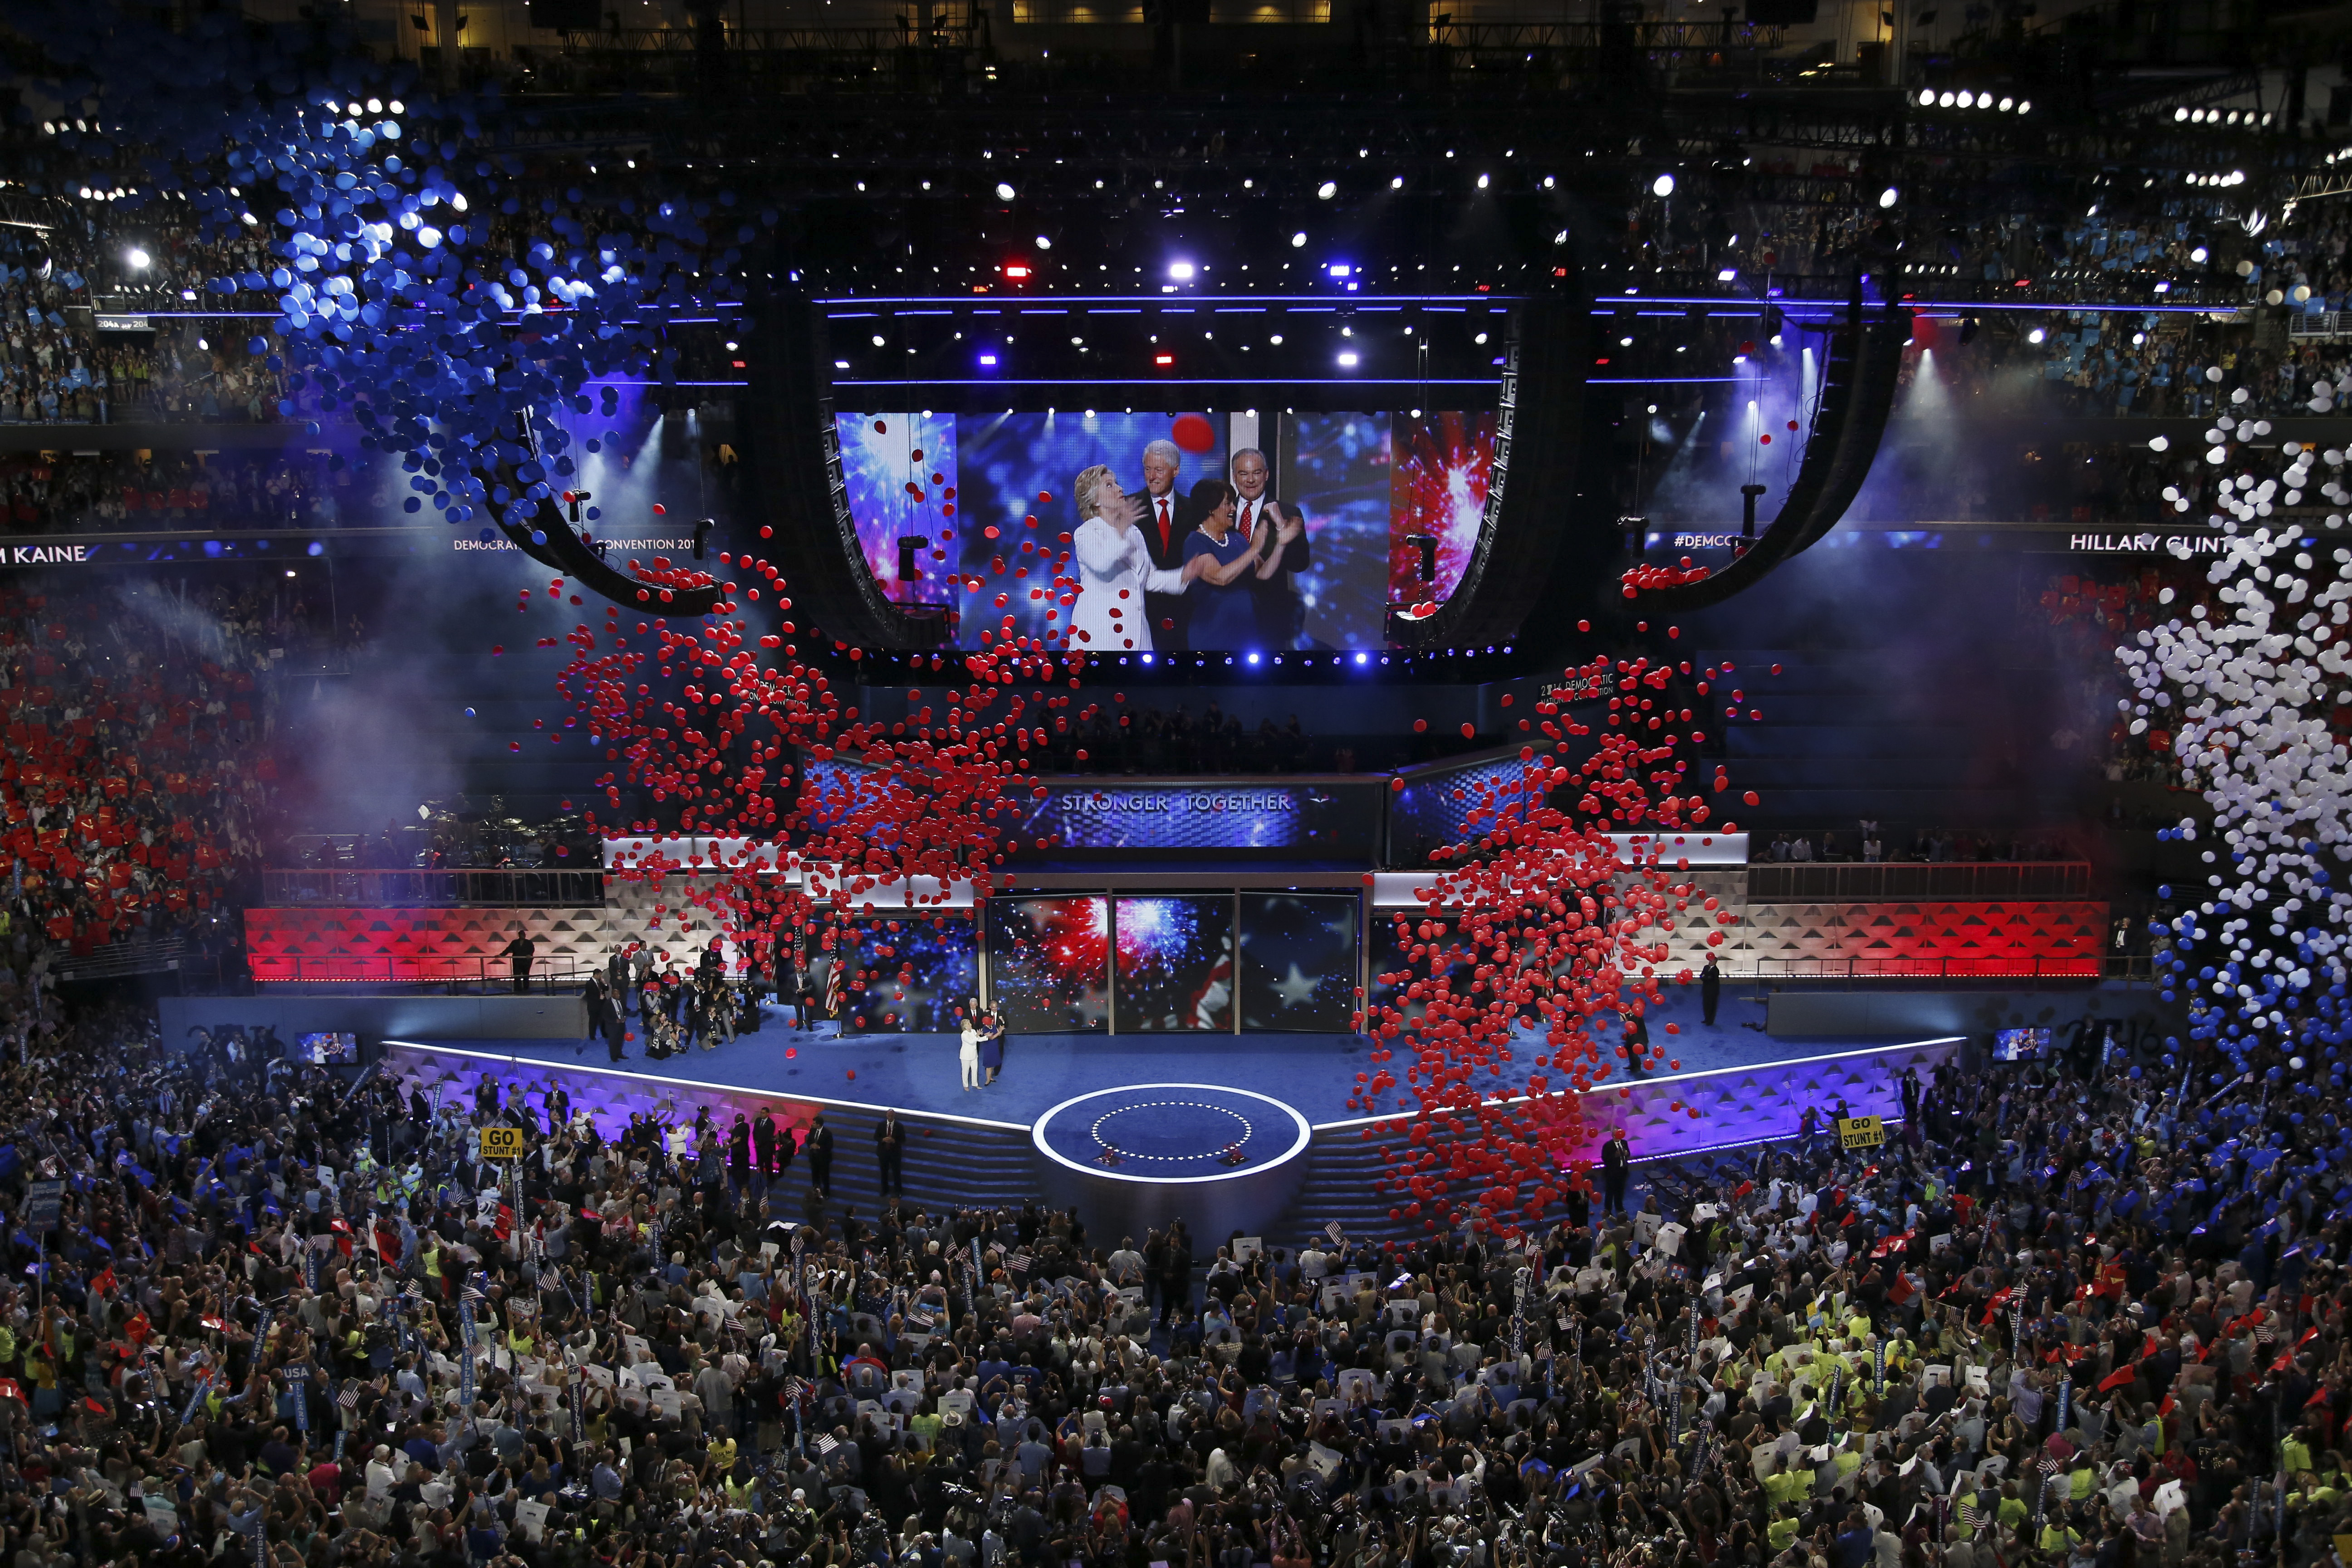 Balloons come down in the Wells Fargo Center after Hillary Clinton accepted the party's presidential nomination on July 28. (Josh Haner/New York Times)